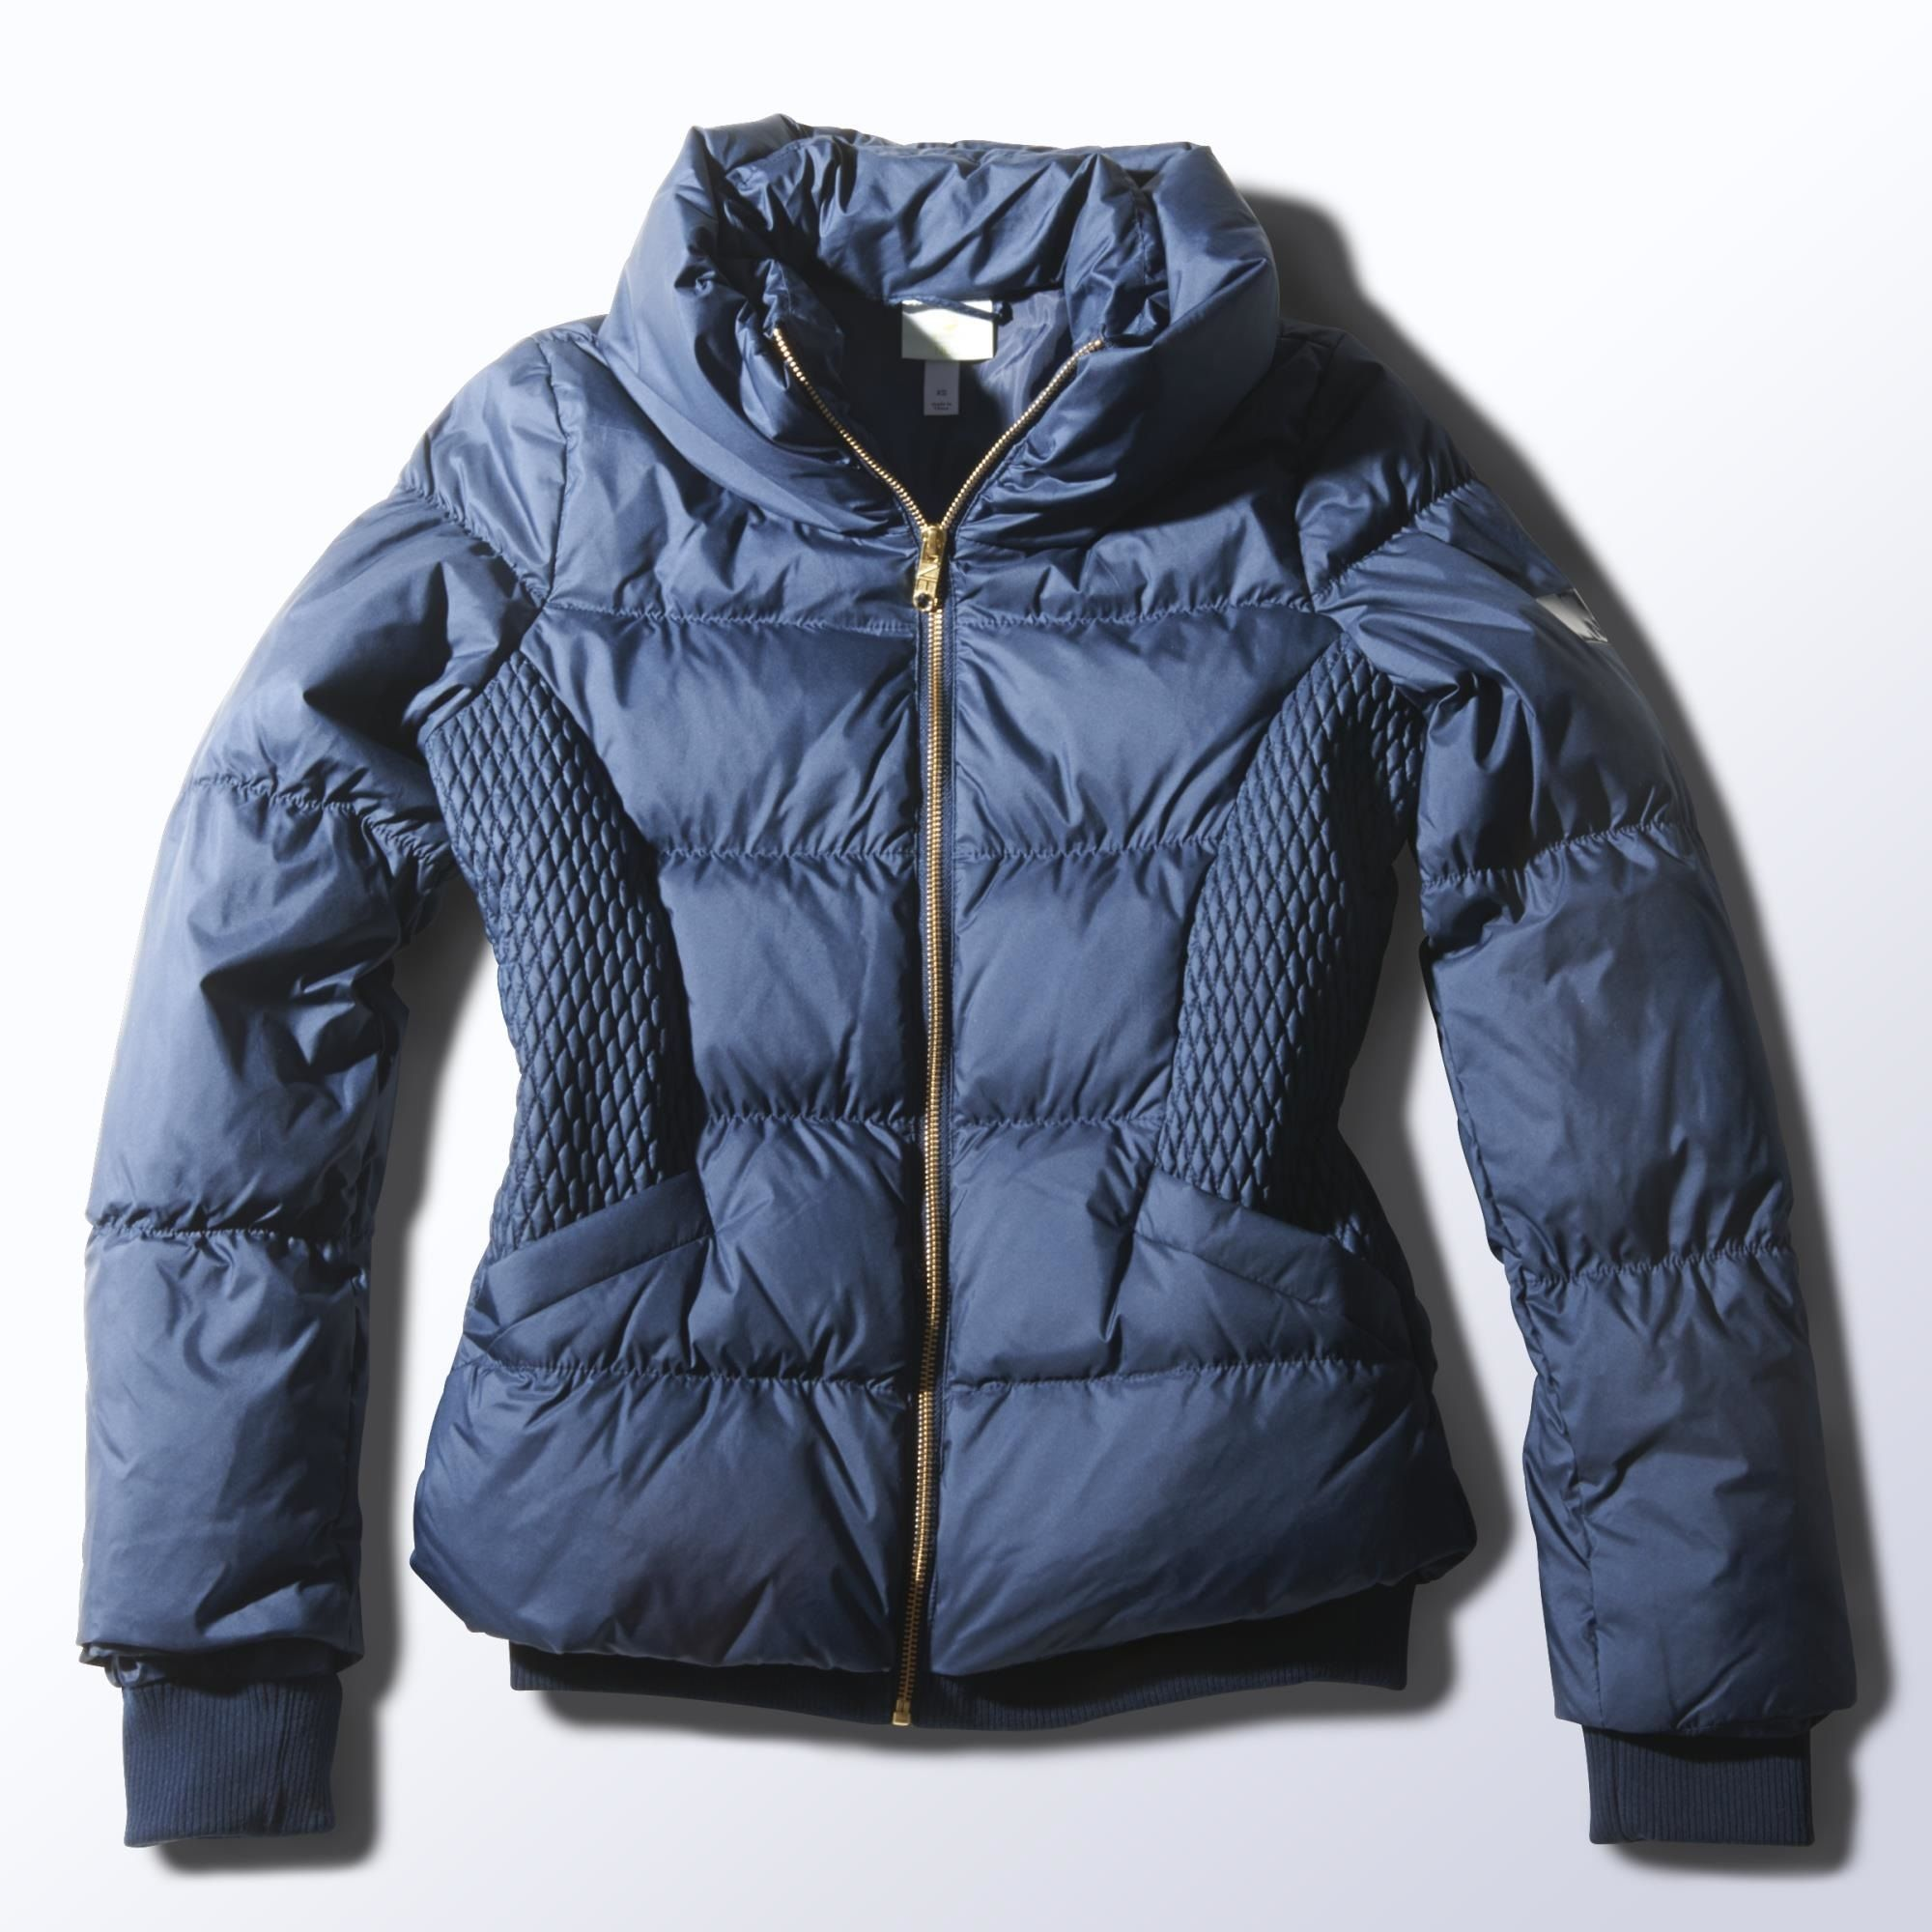 Adidas Neo   Down Jacket    130   A winter jacket with a girly shape. Down  fill (70 30) and a pillow collar make this girls  jacket cosy. 698f447d11e